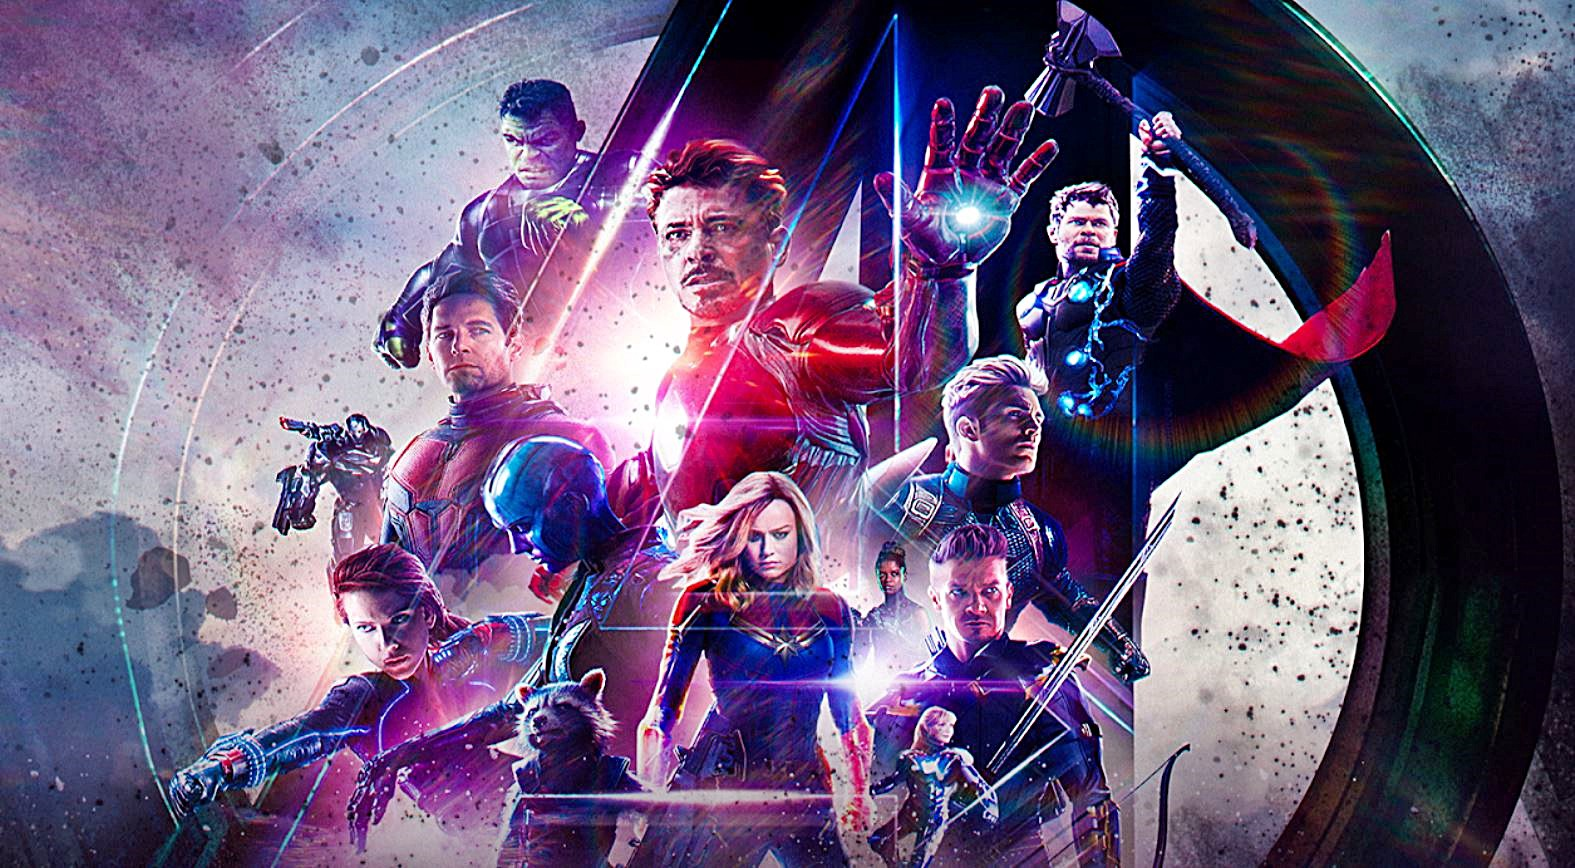 Watch Avengers Endgame 2019 Full Movie Online 123movies